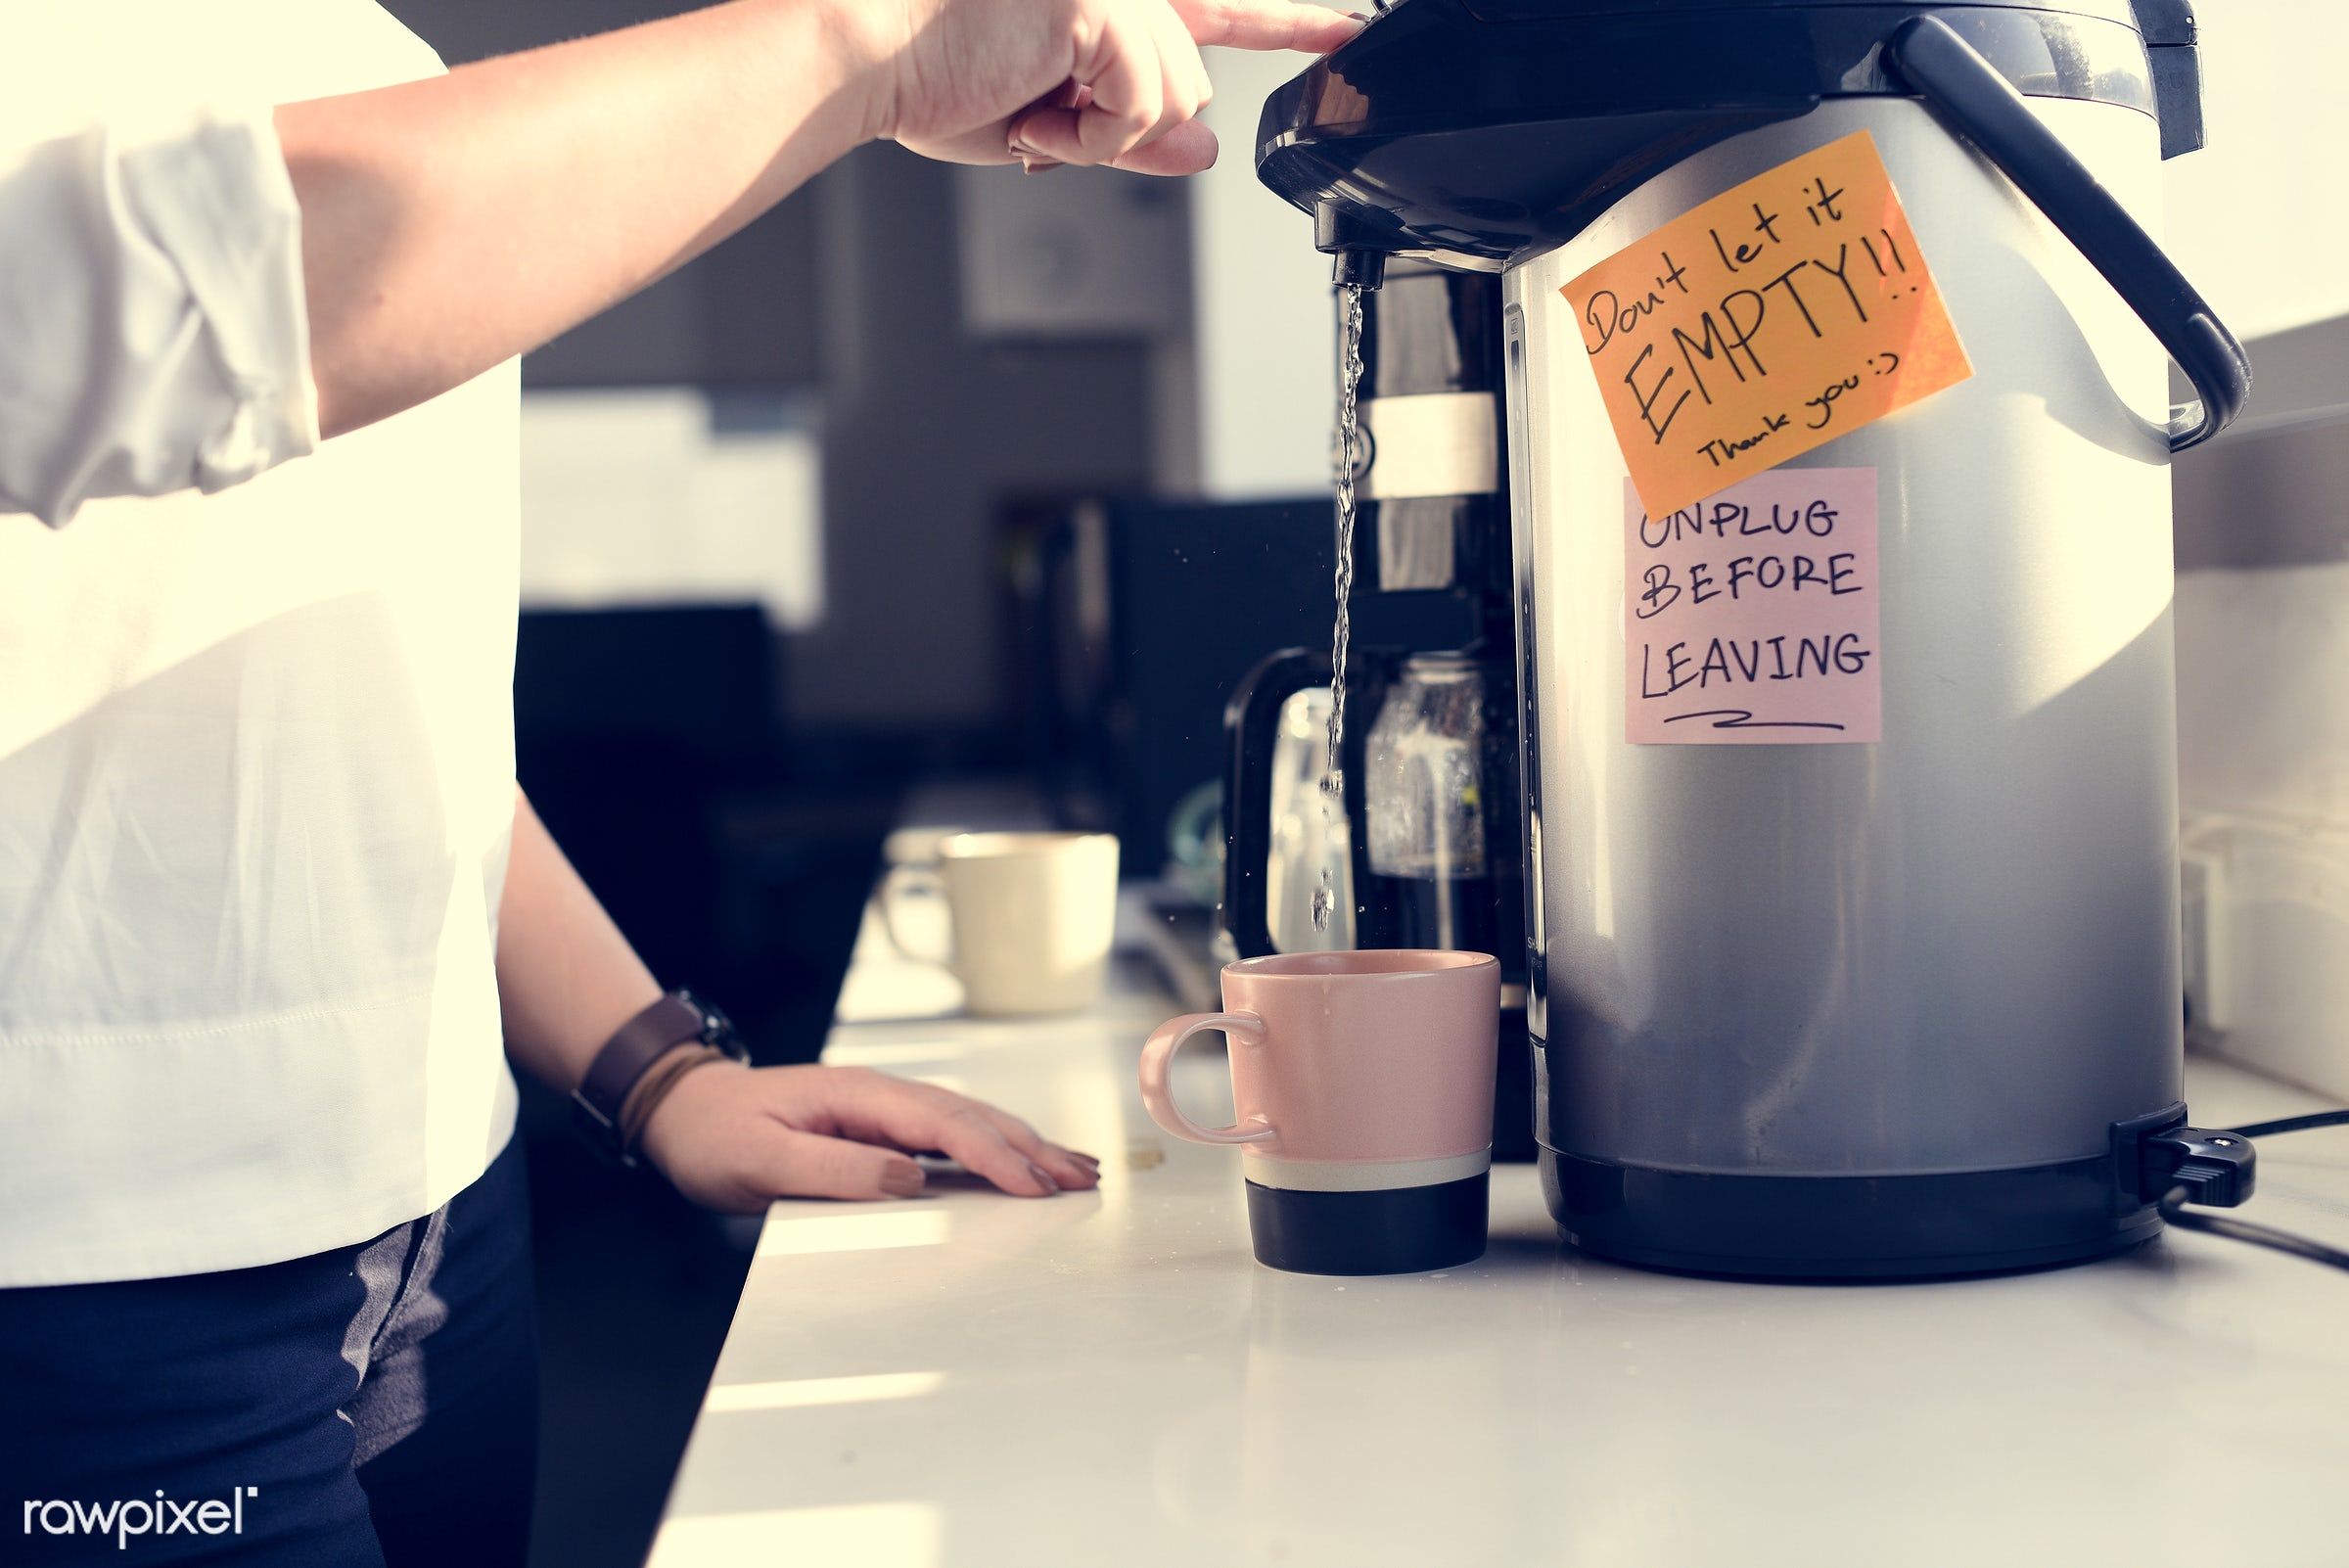 beverage, break, business, cafe, caffeine, canteen, closeup, coffee, company, cup, drink, hands, hot drink, leisure, life,...